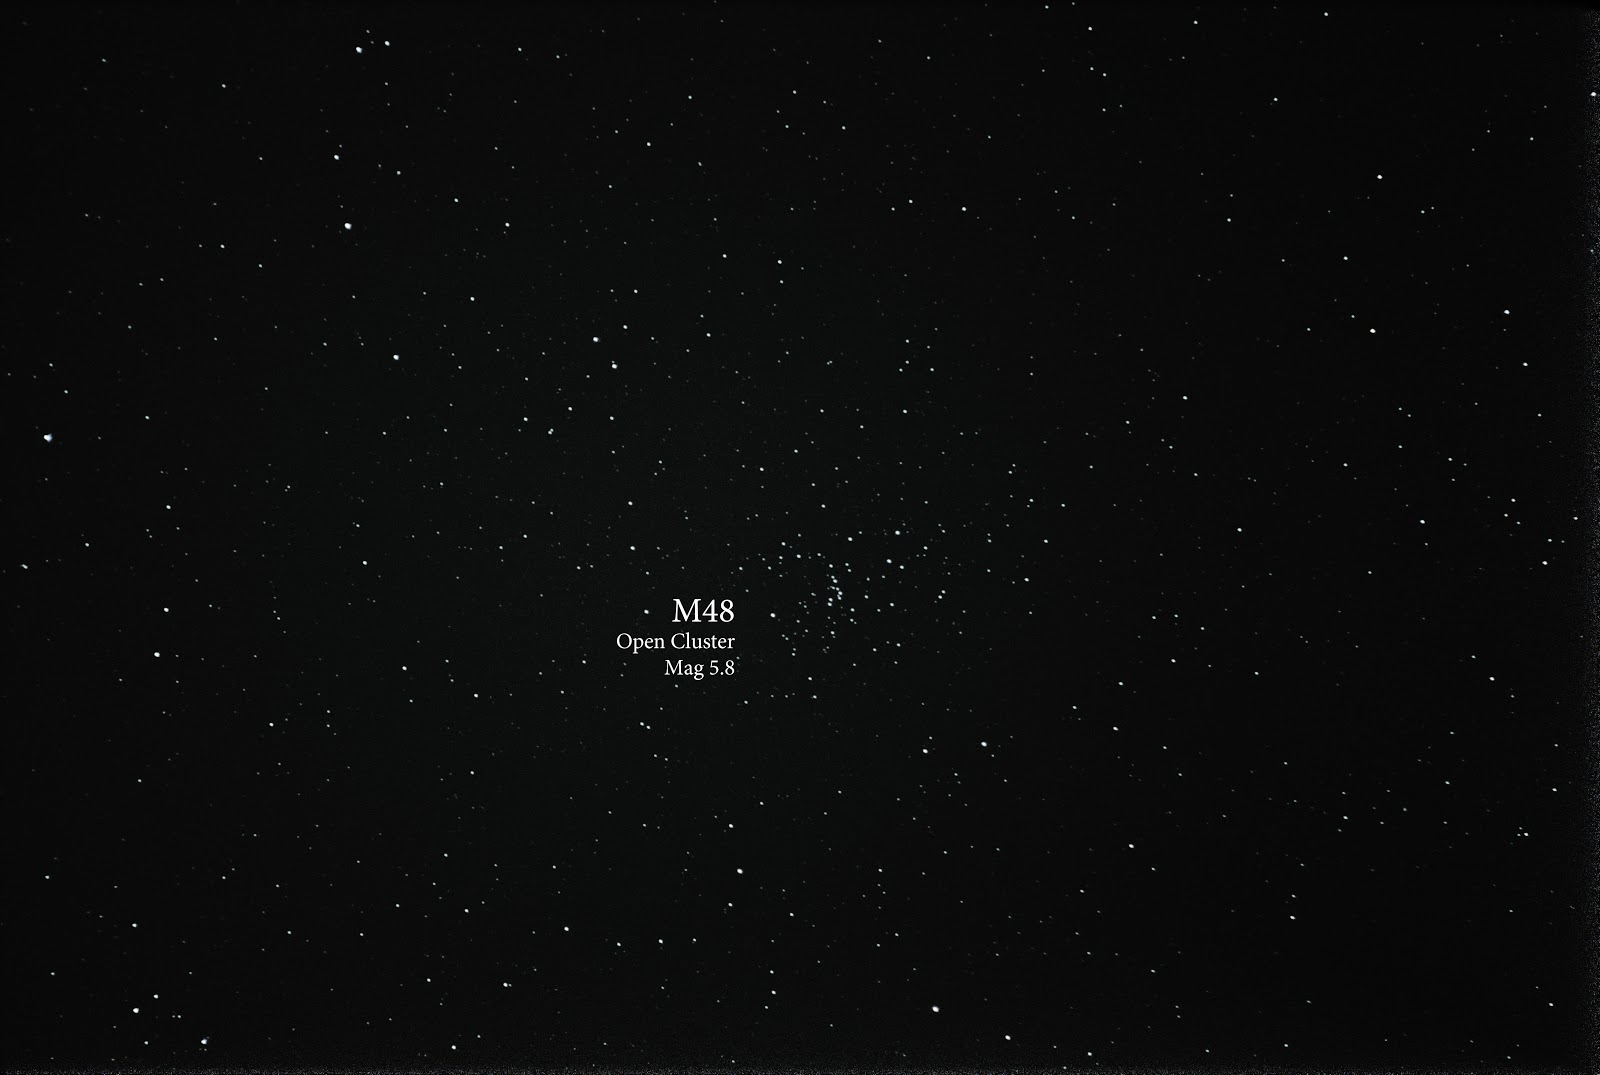 open cluster M48 with canon t5i